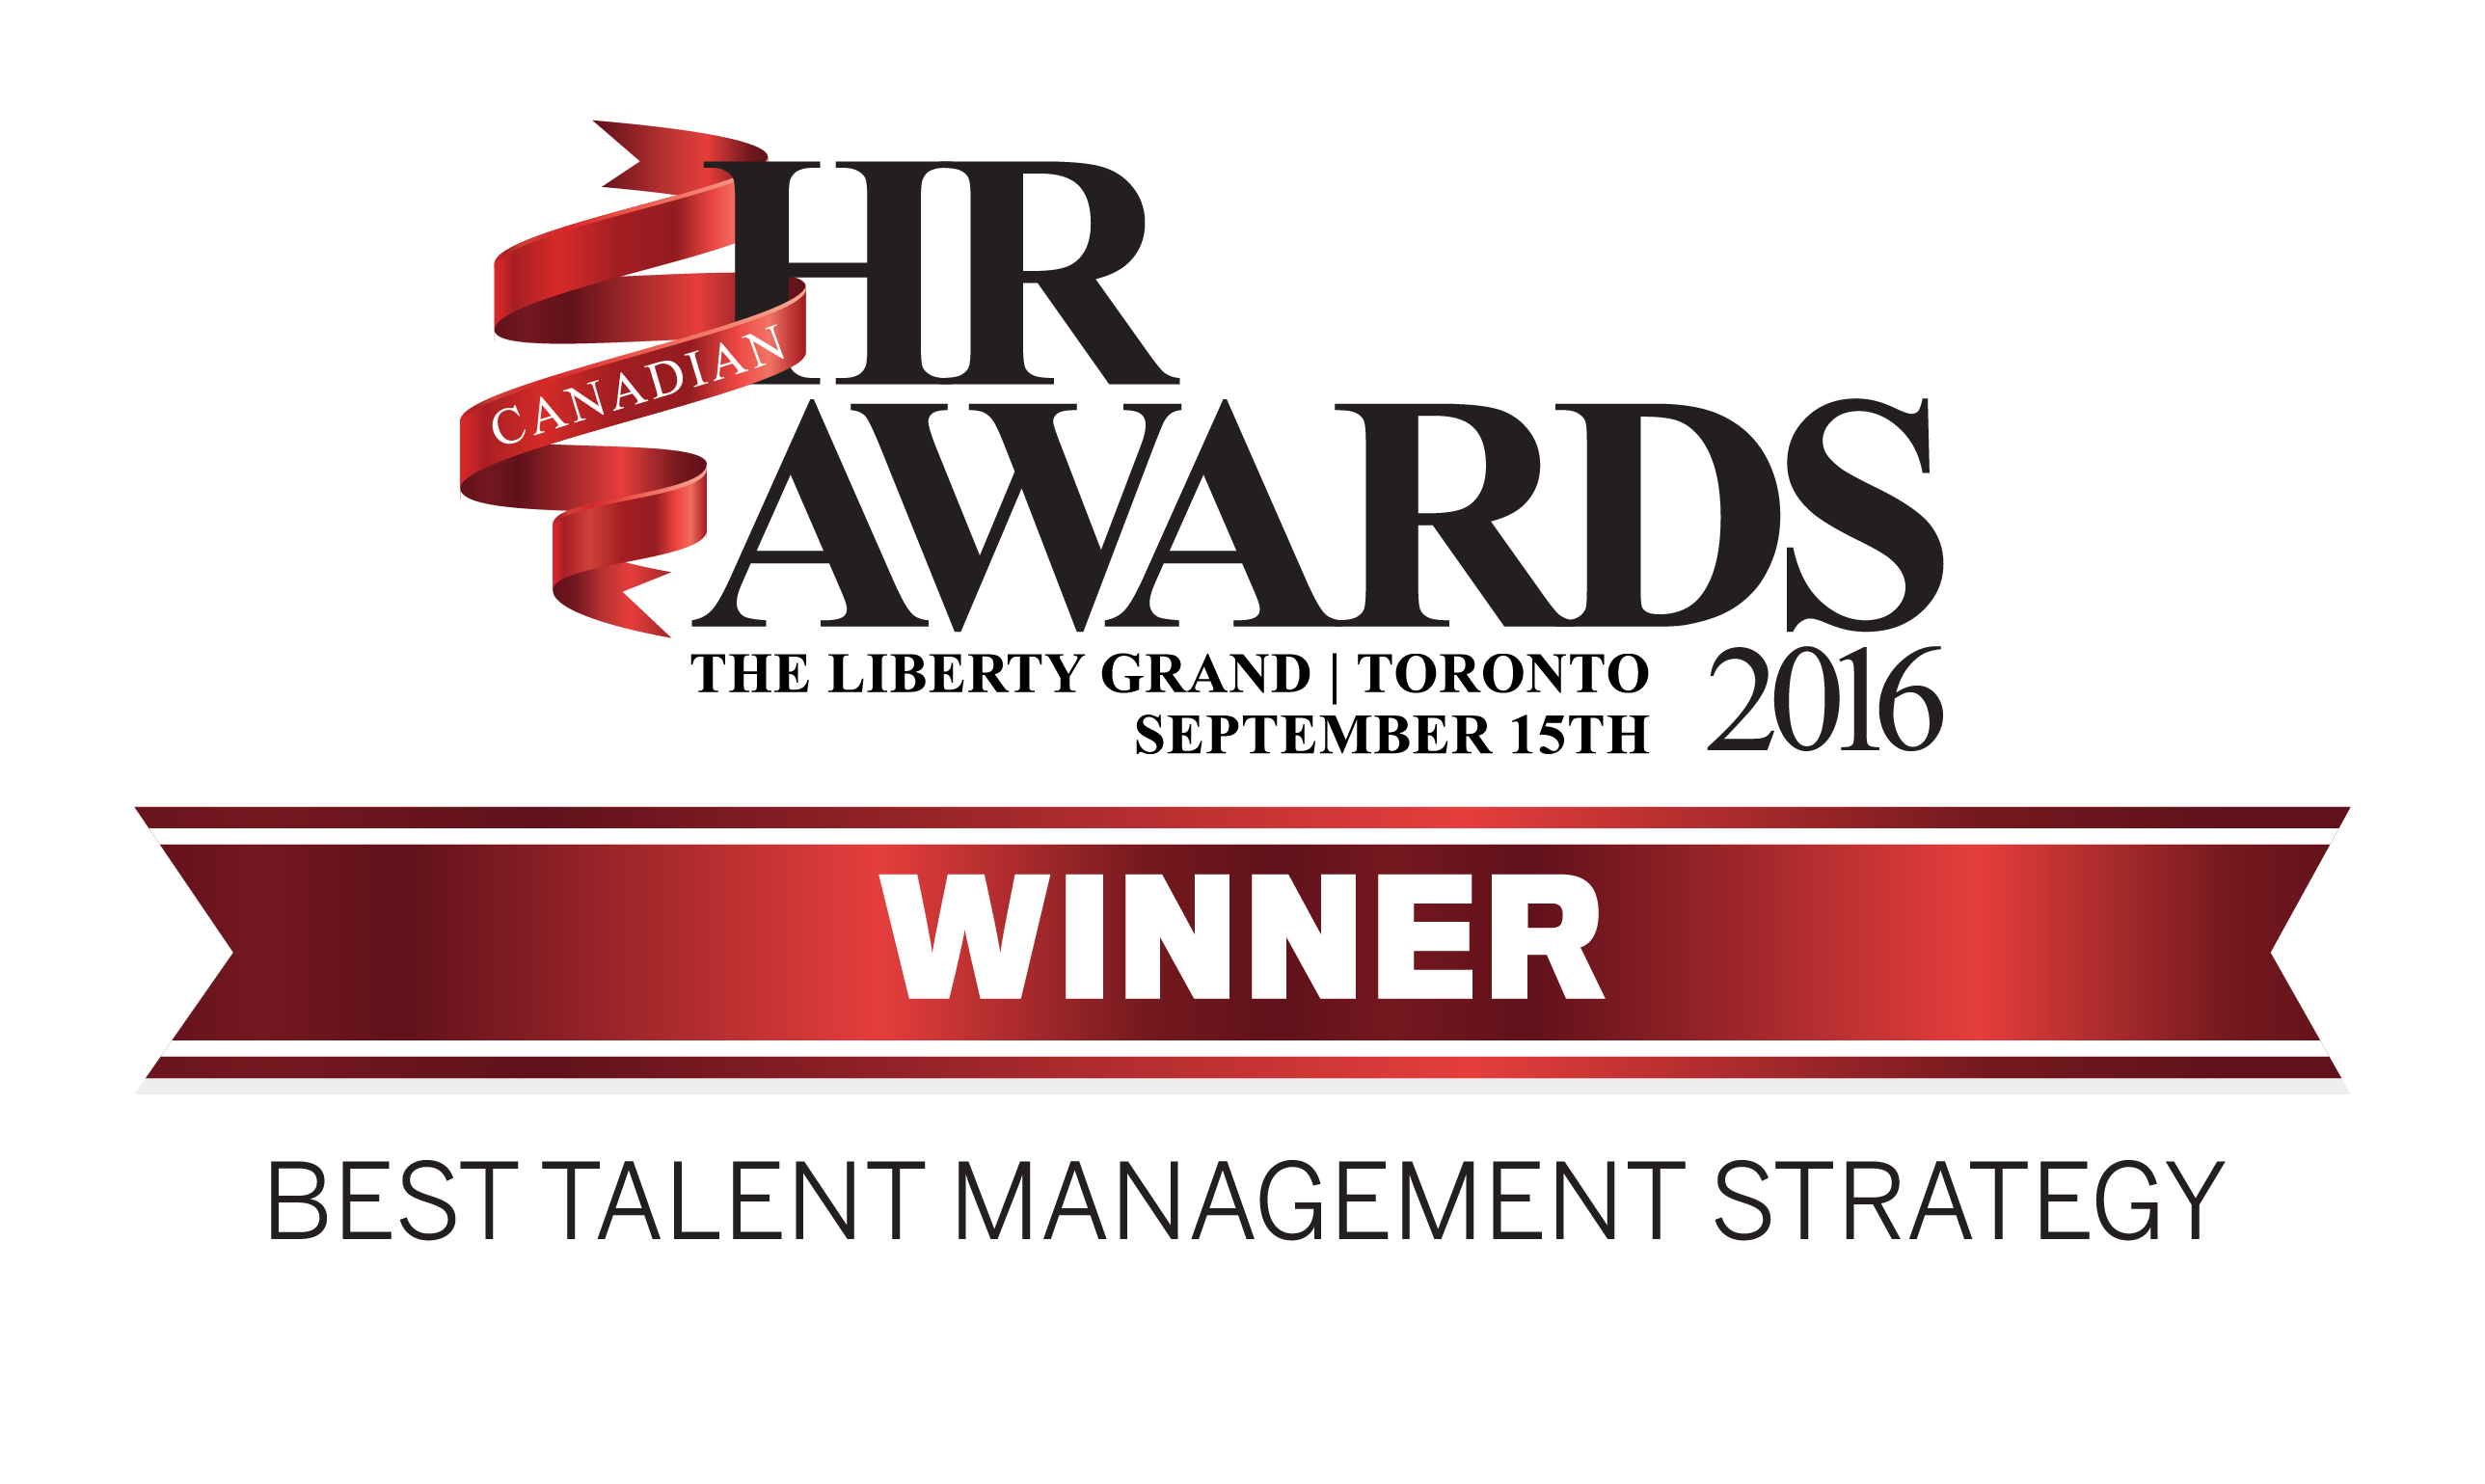 talent management strategy Adopt a top-notch talent management strategy that helps you recruit and retain employees who add value to your company.